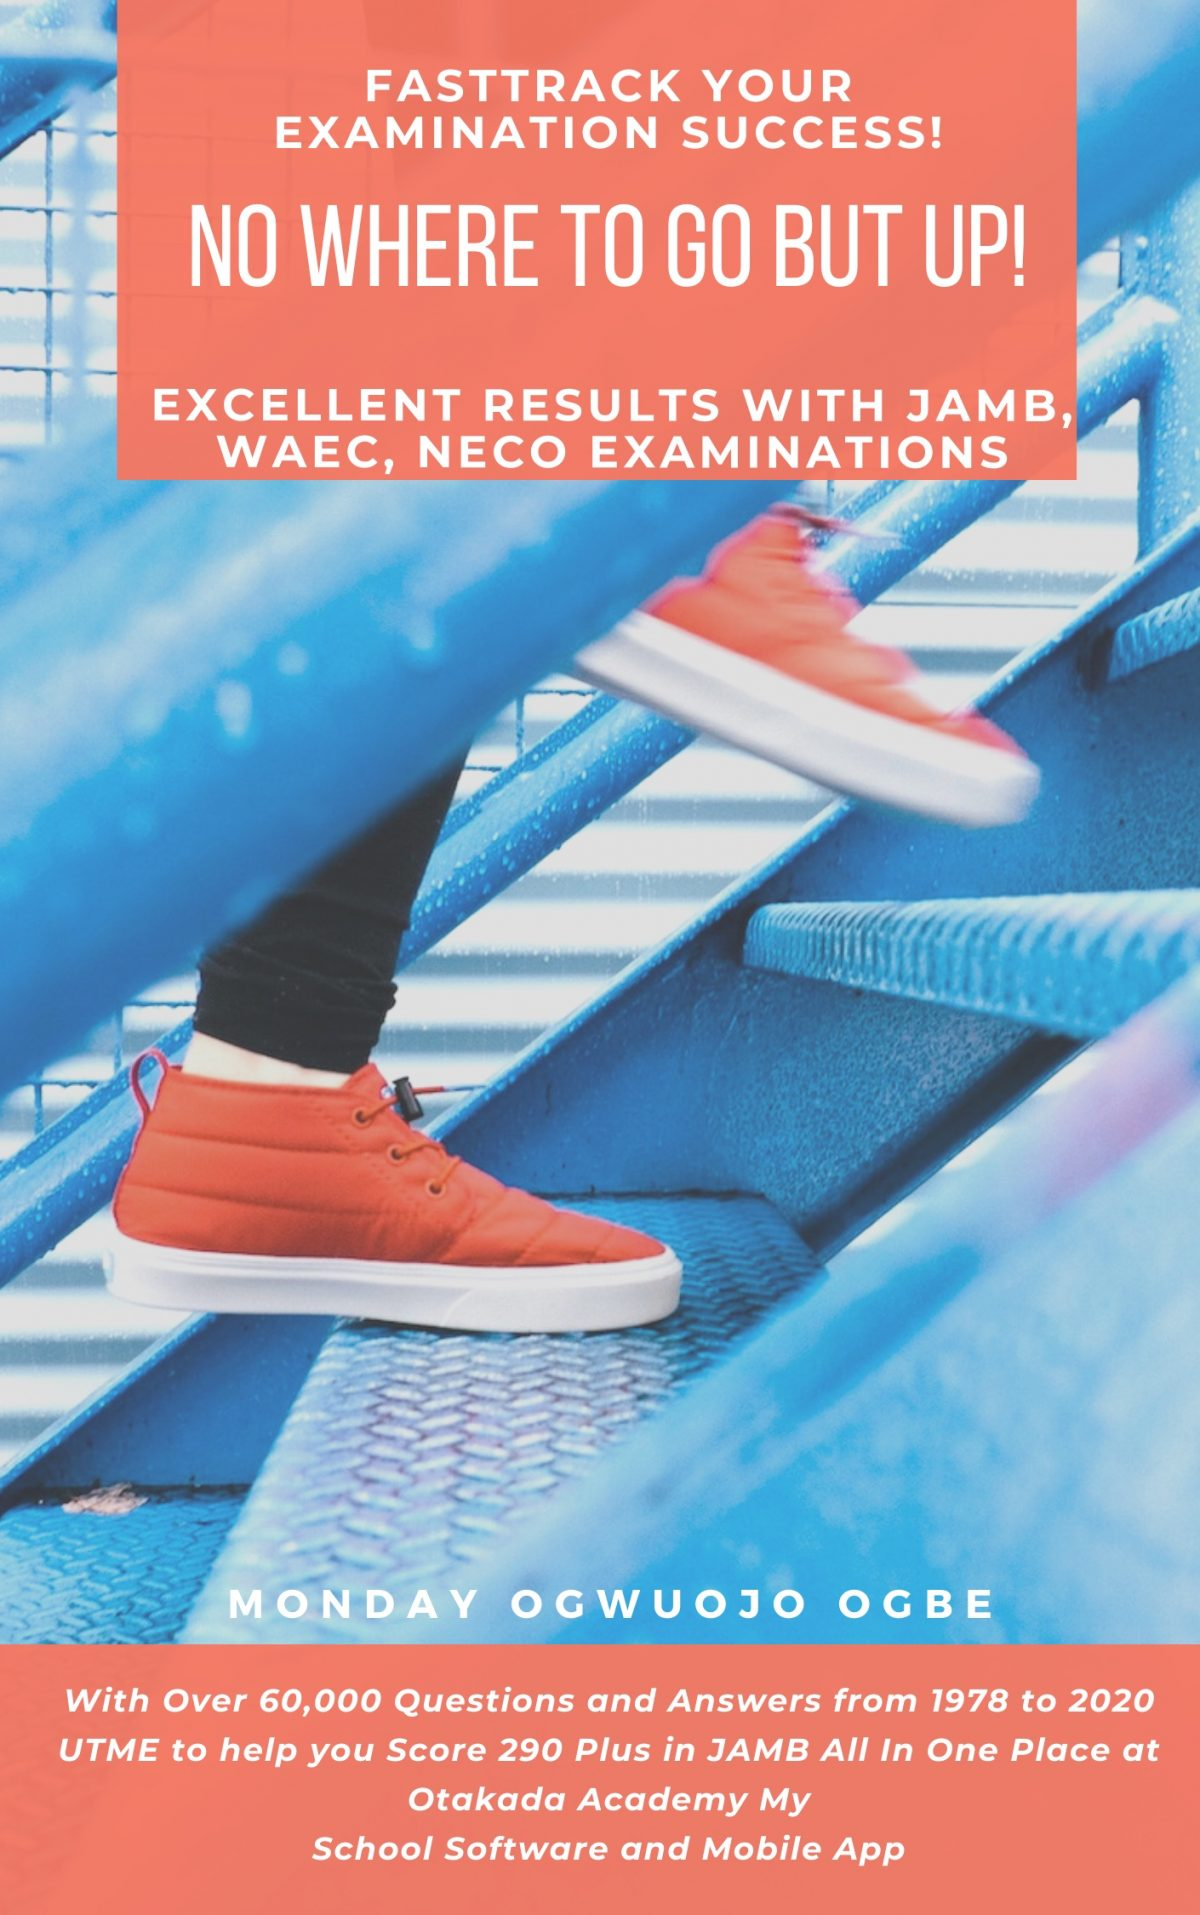 FastTrack Your Examination Success! - No Where to Go but Up! Excellent Results with JAMB, WAEC, NECO Examinations With Over 60,000 Questions and Answers from 1978 to 2020 UTME to help you Score 290 Plus in JAMB All In One Place at Otakada Academy My School Software and Mobile App